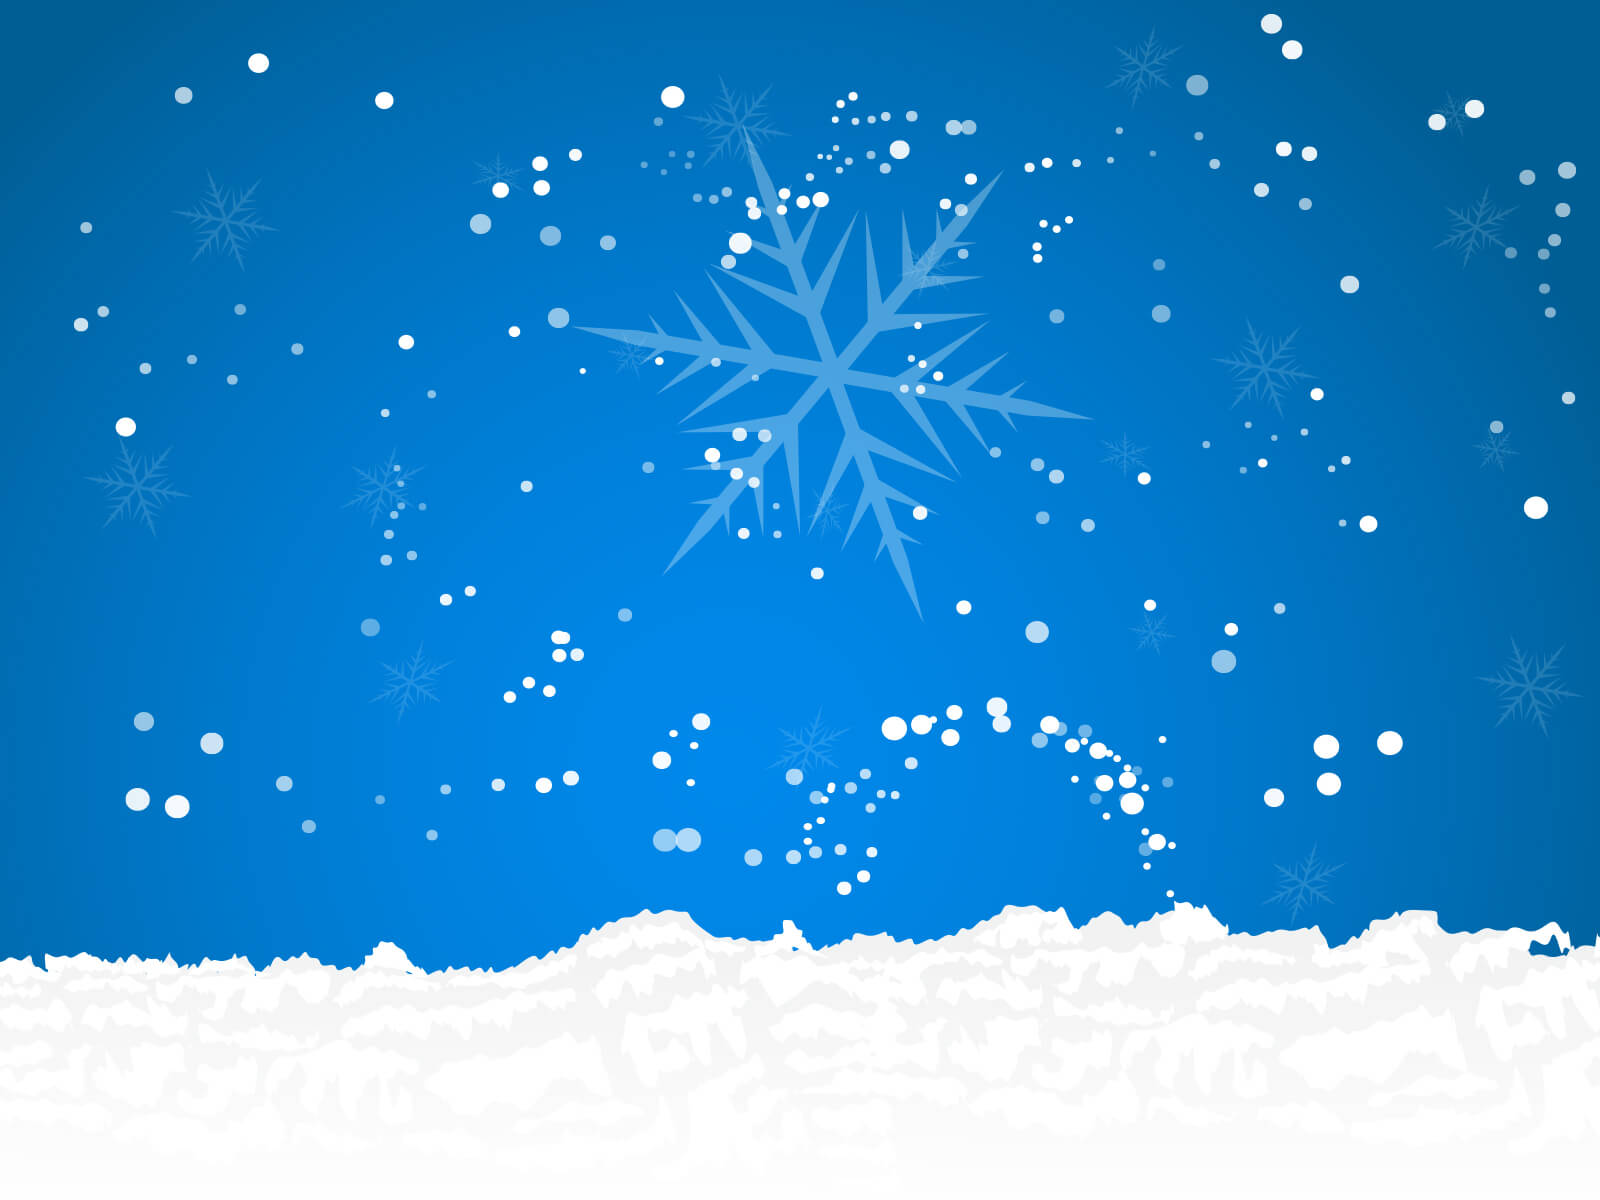 Snow Powerpoint - Free Ppt Backgrounds And Templates With Regard To Snow Powerpoint Template